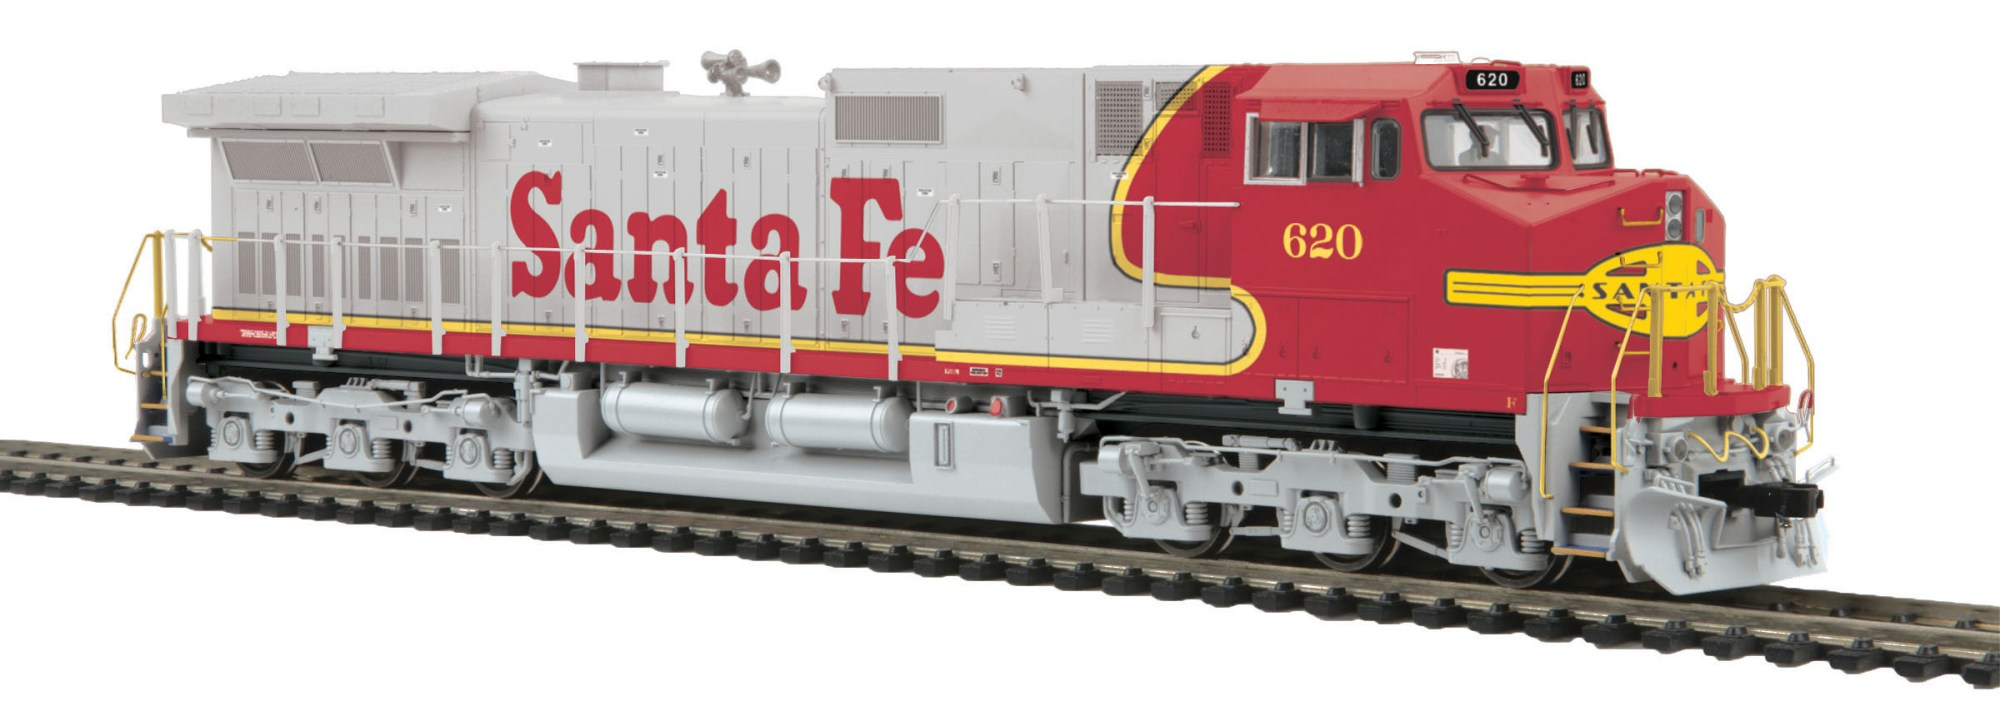 hight resolution of  array 80 2302 1 mth electric trains rh mthtrains com